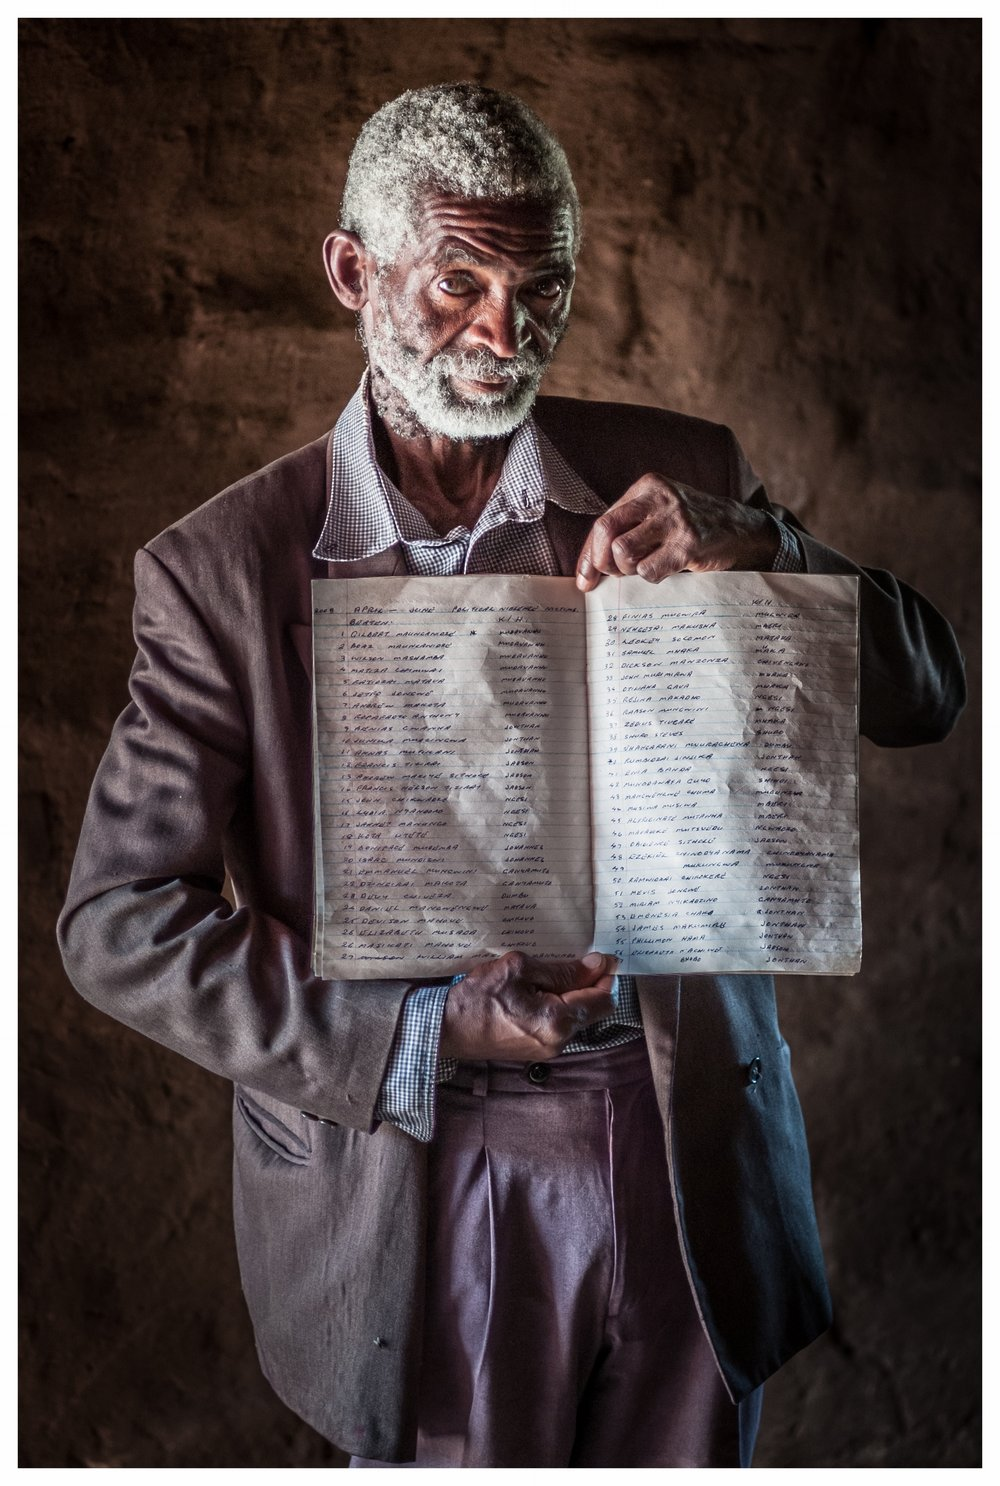 Bernard, village Councillor for the MDC, holds the record of people beaten in his area by Mugabe's forces . Masvinga, Southern Zimbabwe. Photo © Marcus Perkins